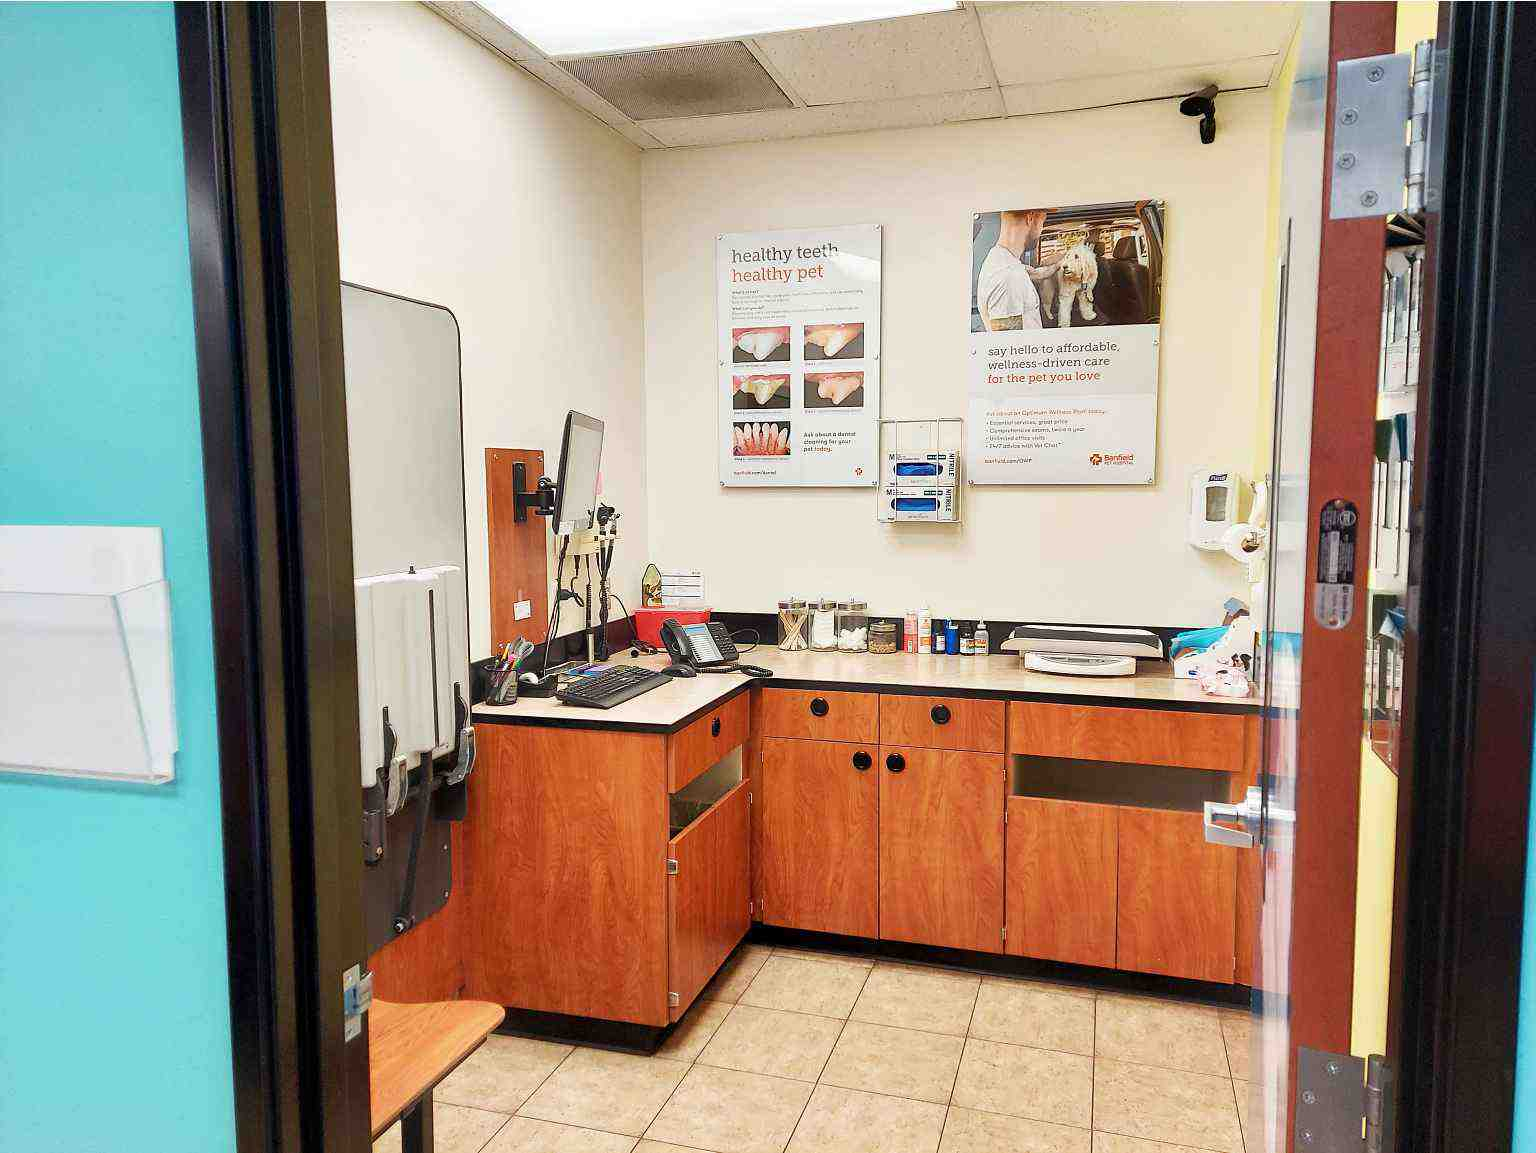 The pet examination room at the Banfield Pet Hospital